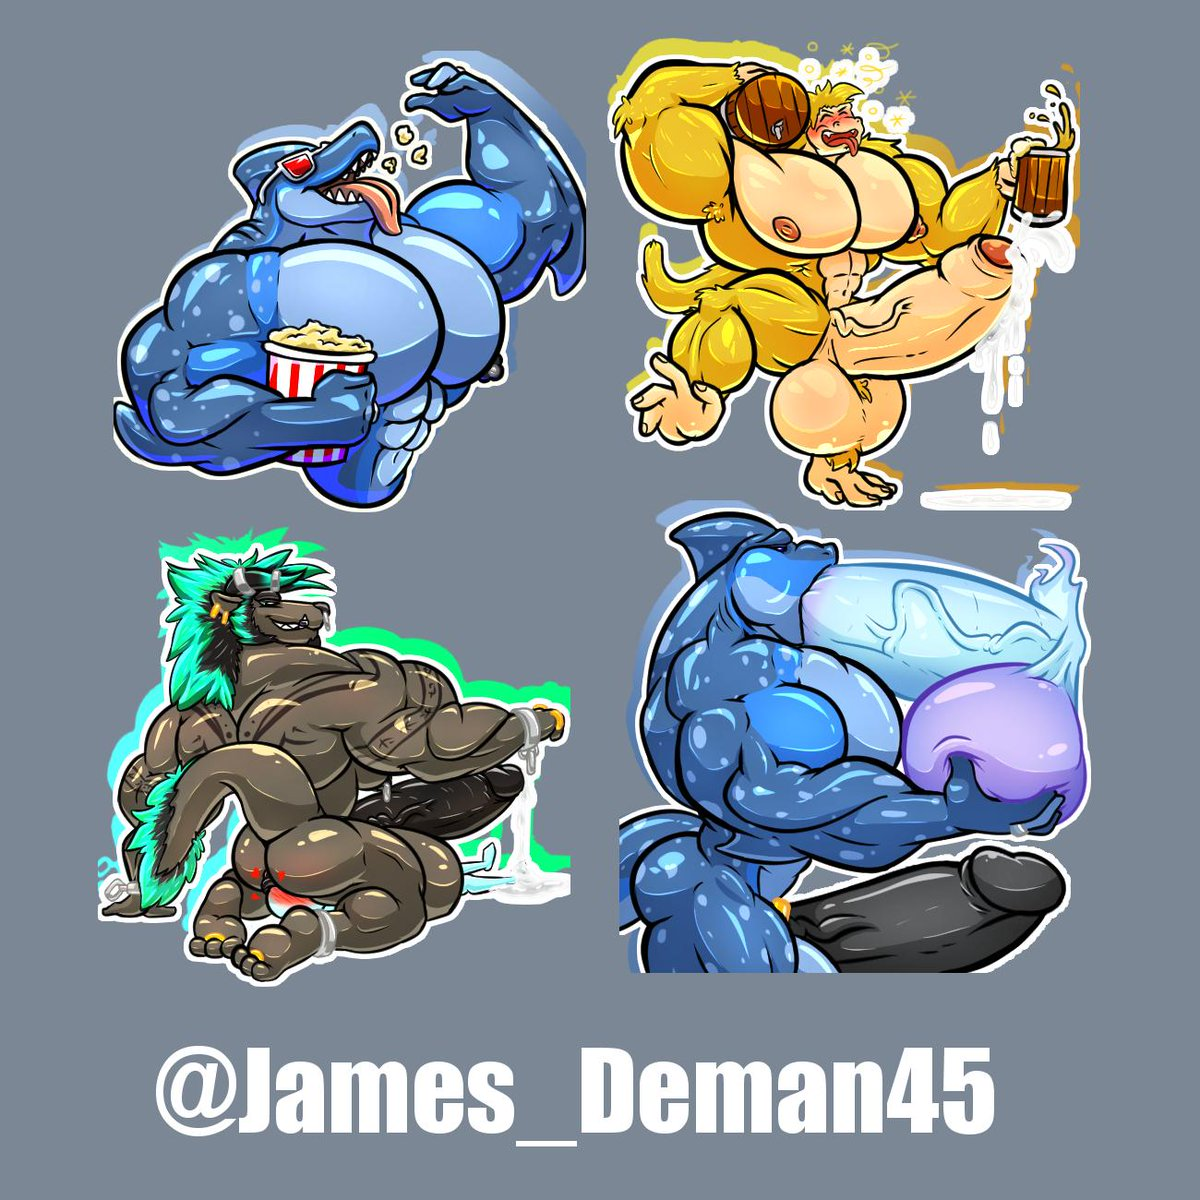 Forgot to post this D:   Finished sticker pack for @James_Deman45 of a few of his big fellas being lewd~ (mostly)<br>http://pic.twitter.com/5kyl6wJtHt